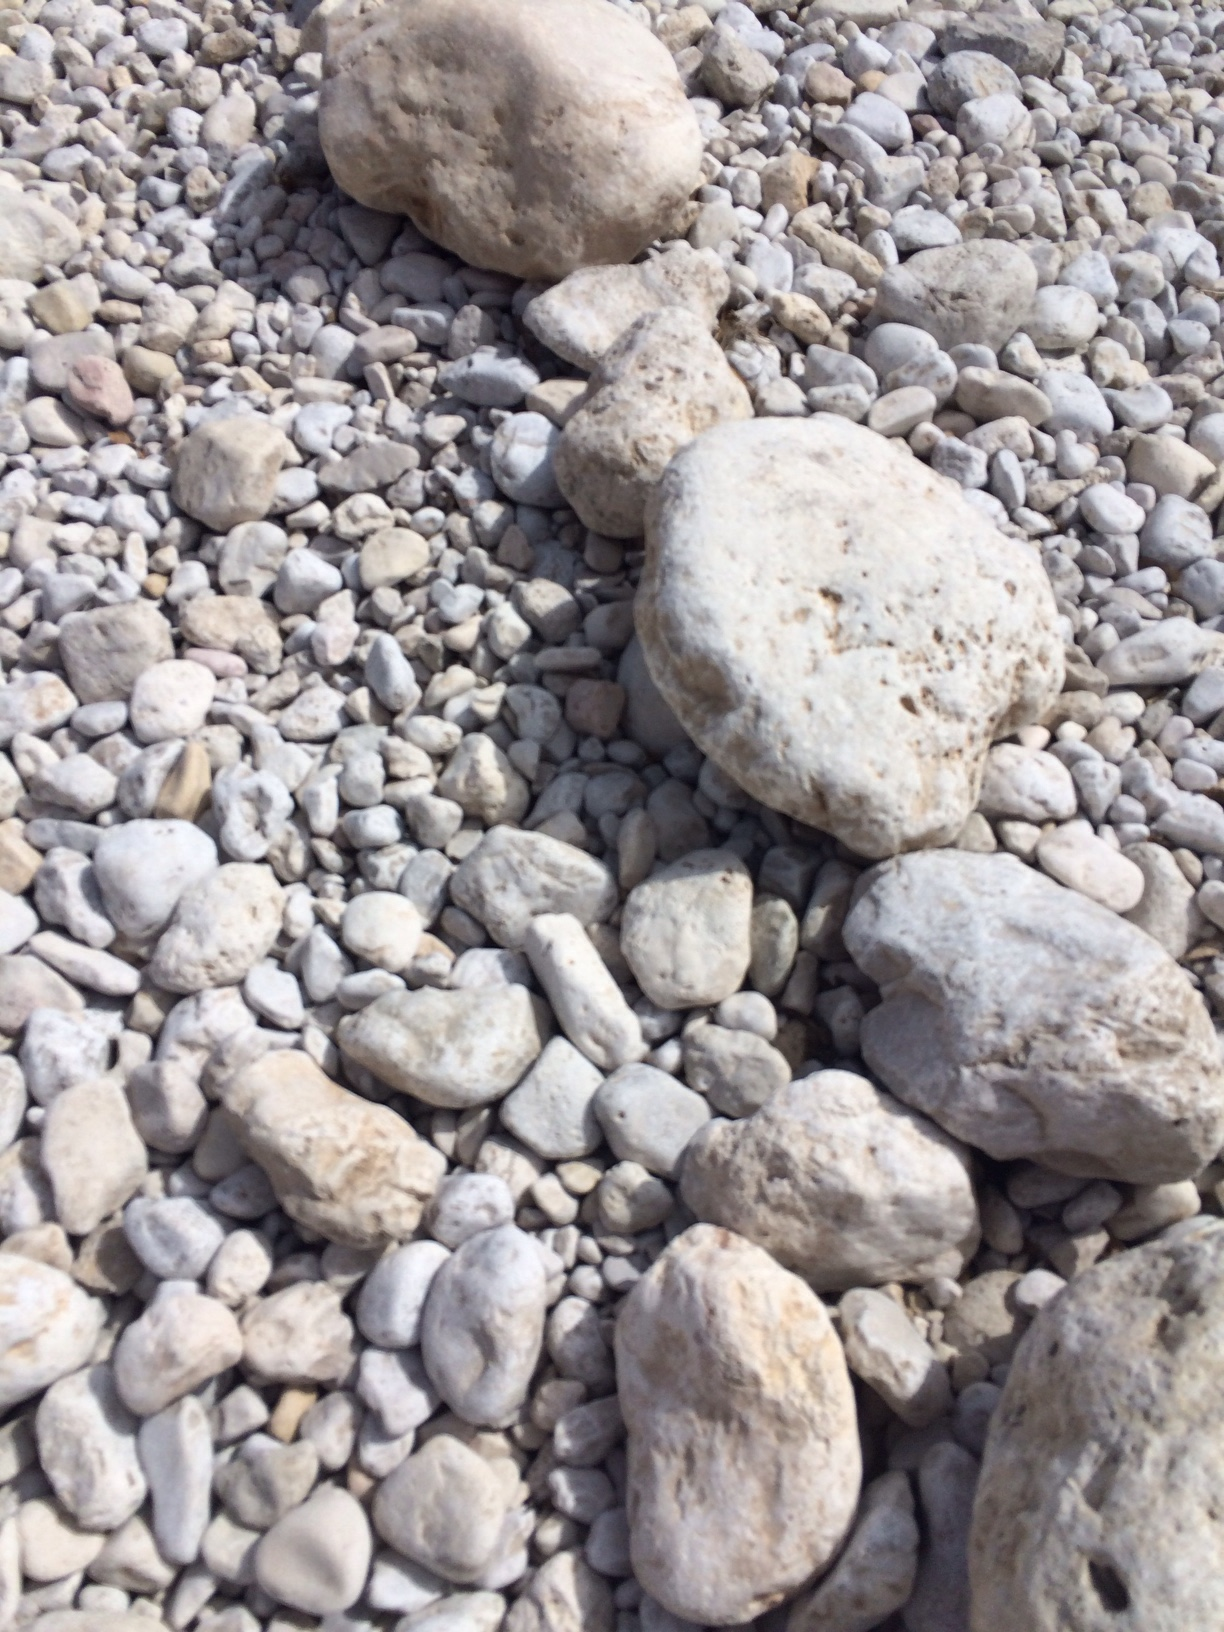 Stones on a river bed